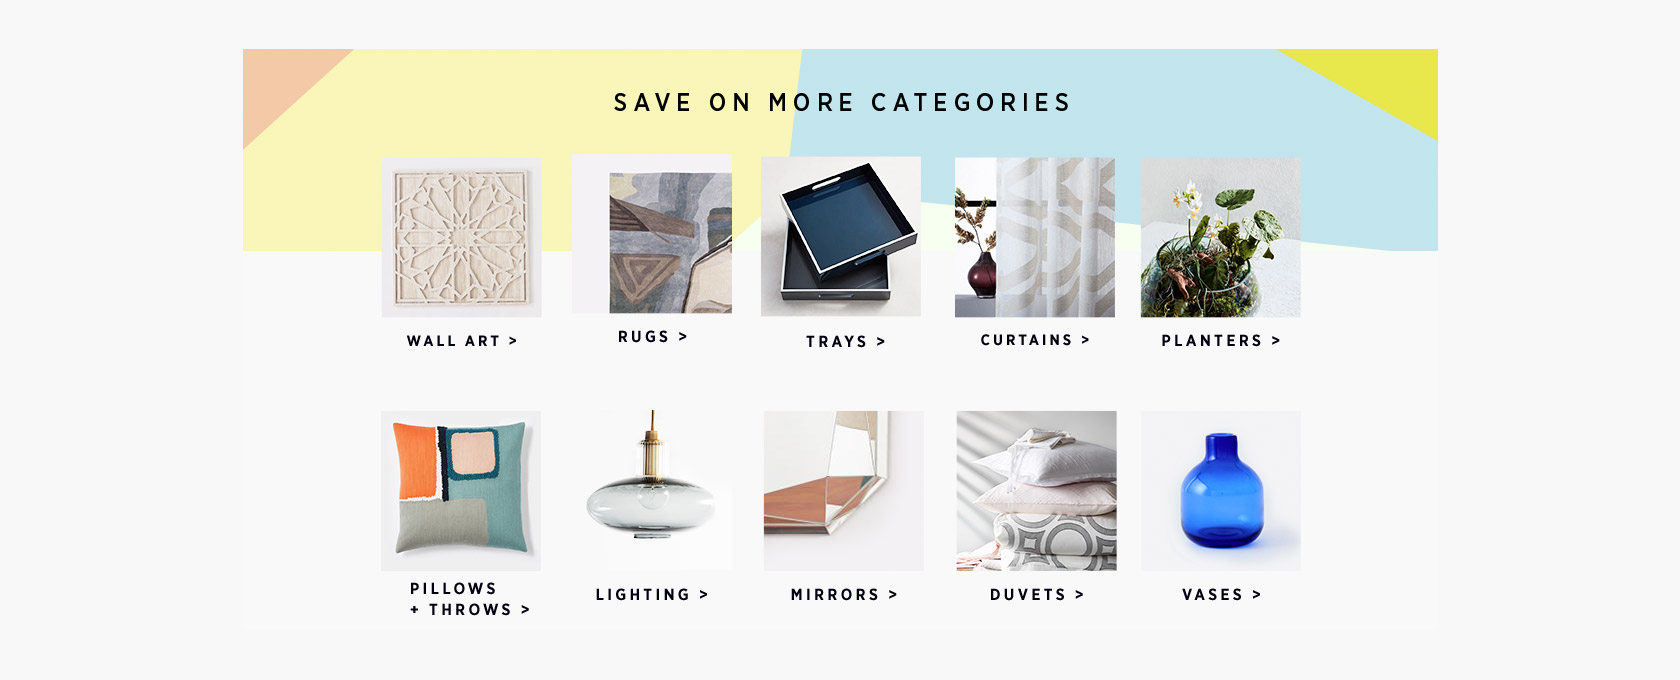 Shop Our Featured Categories